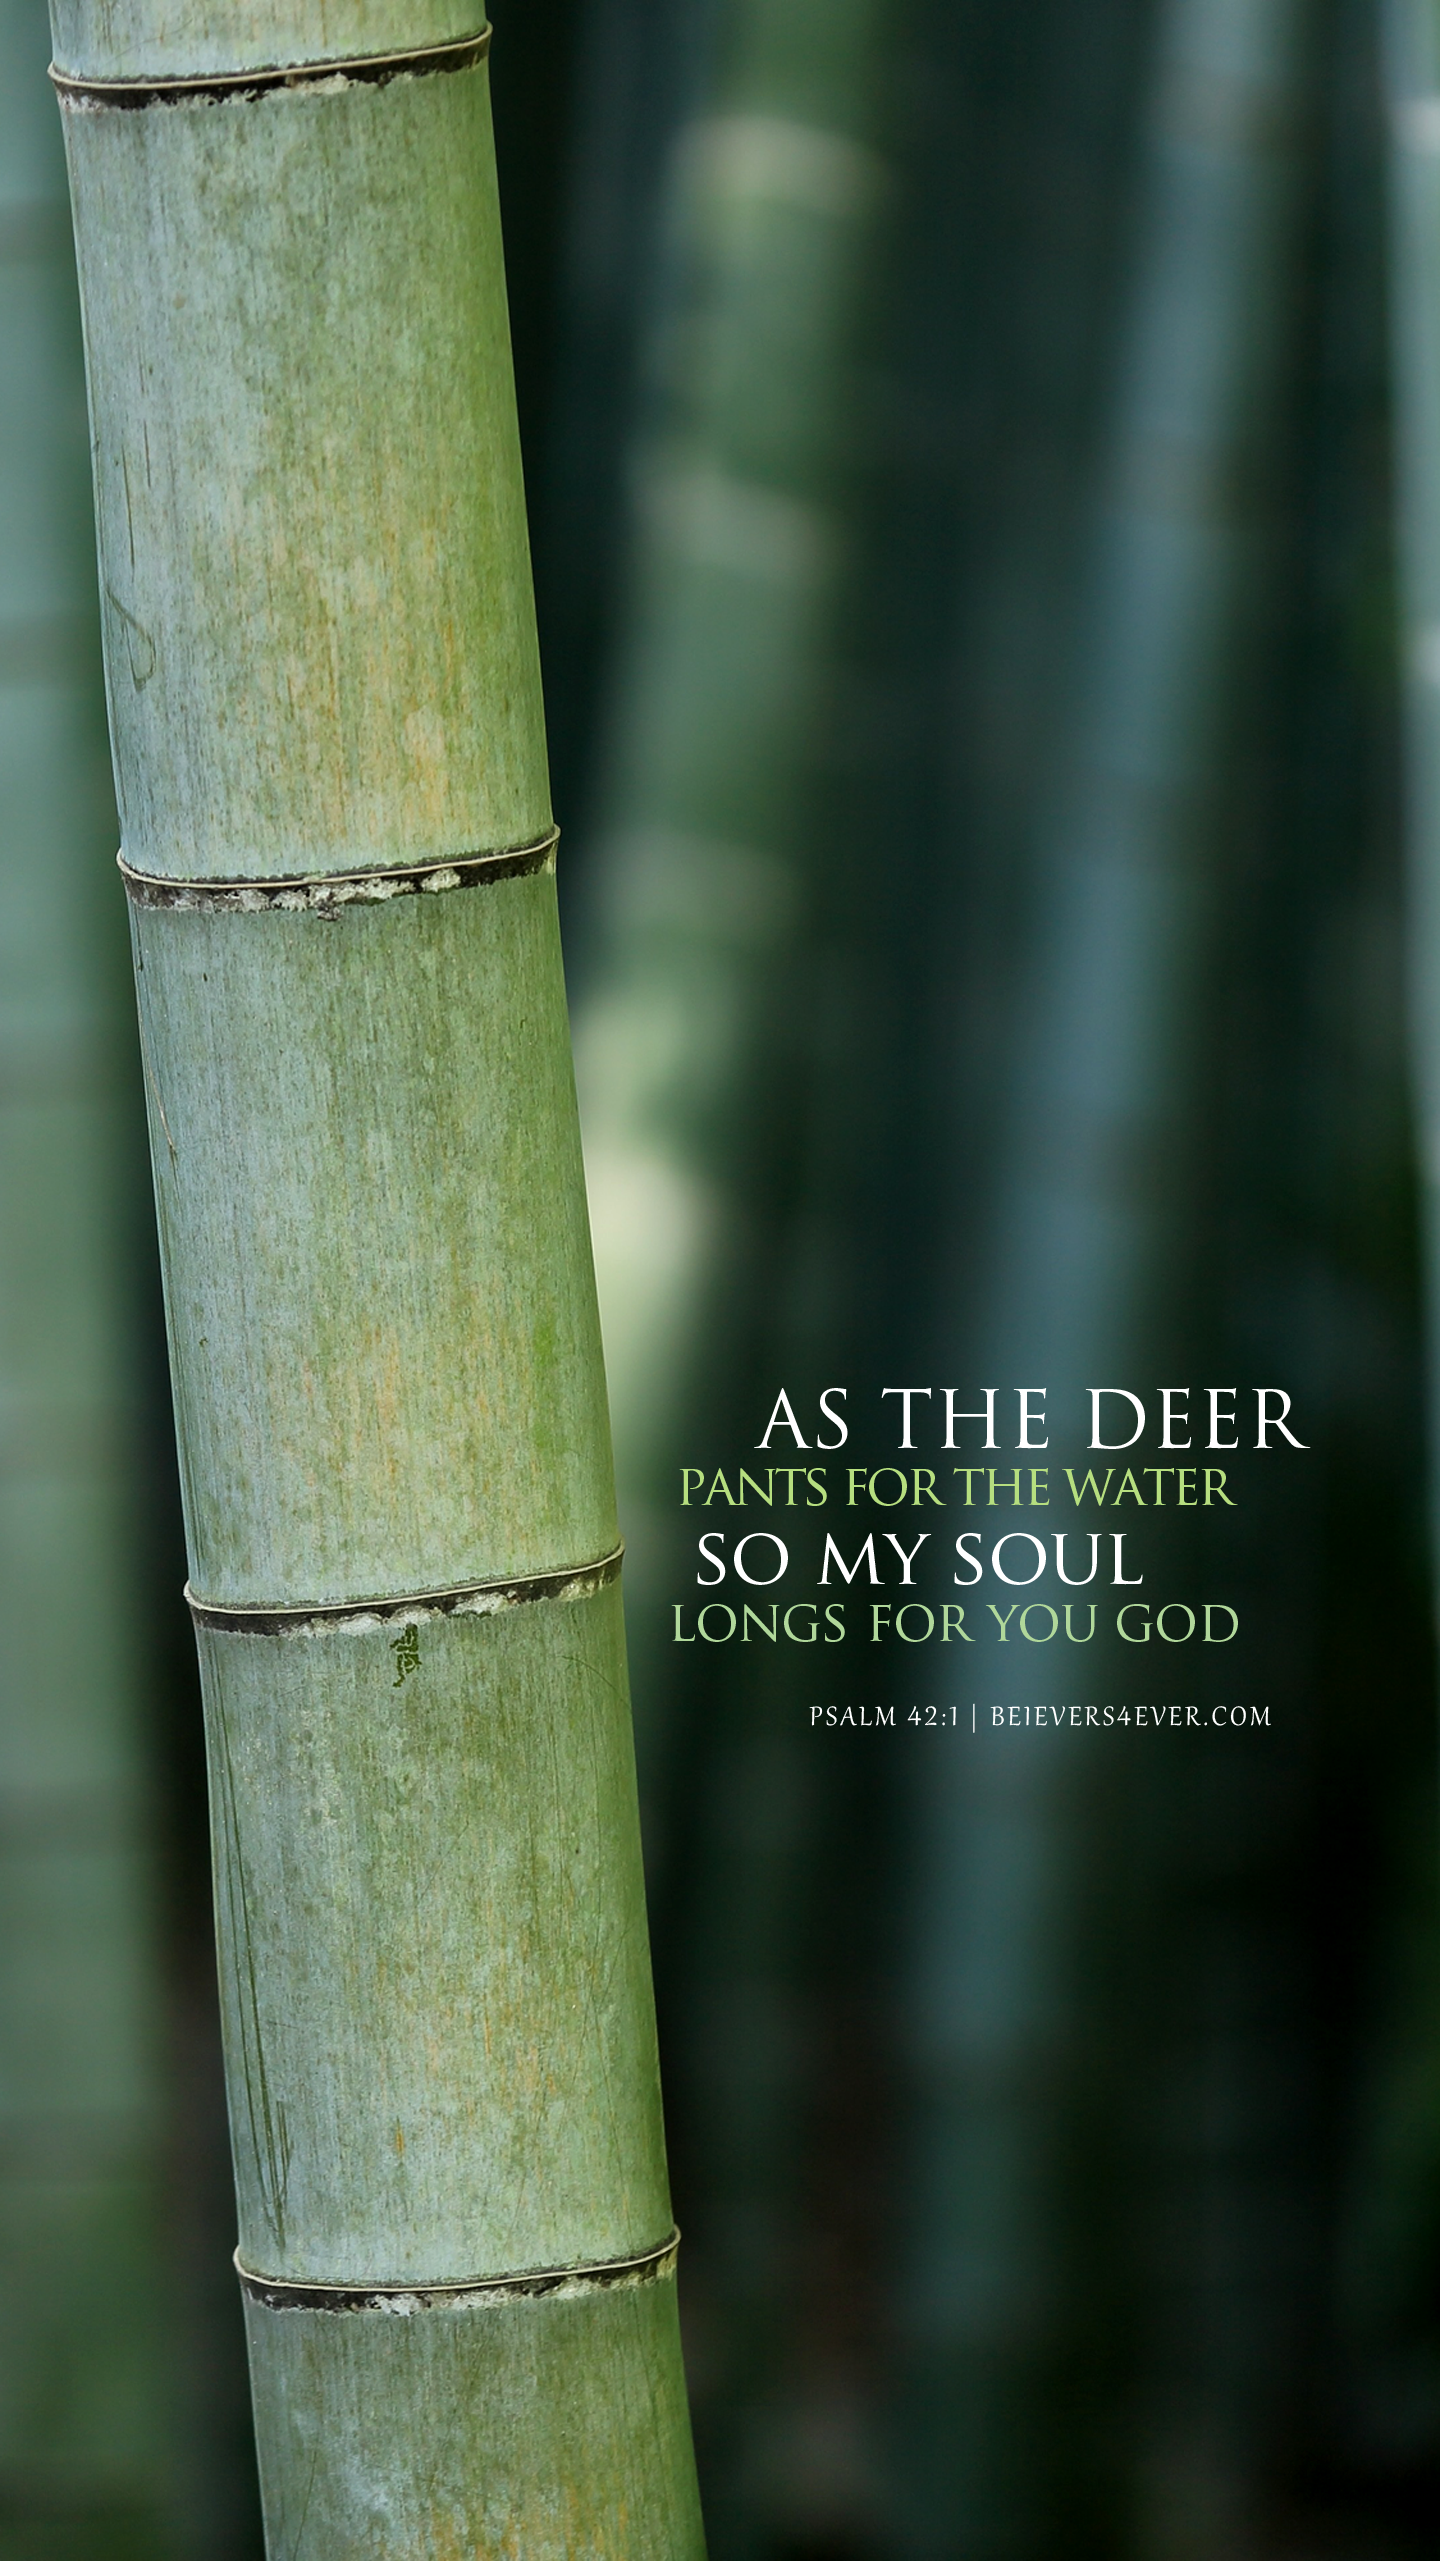 As the deer Lock Screens Cases Iphone wallpaper quotes bible 1440x2561